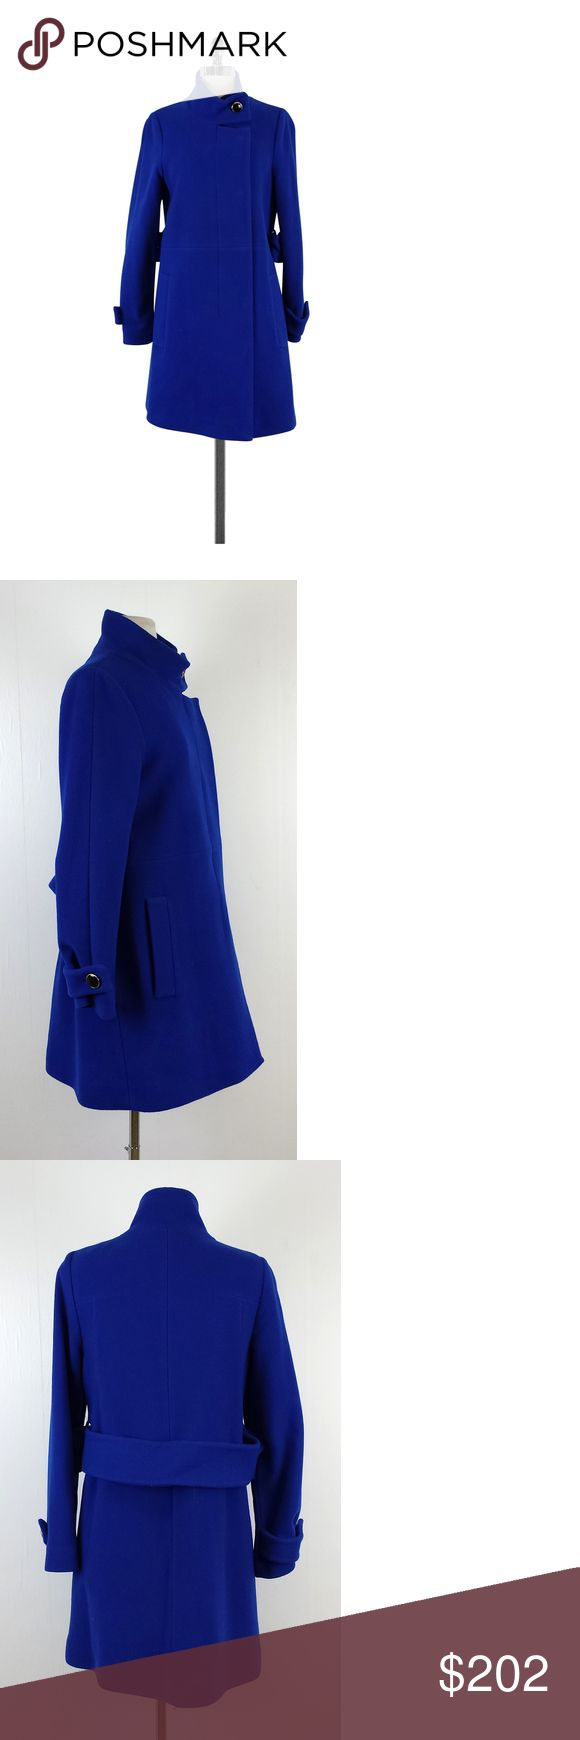 """Trina Turk- Cobalt Blue Wool Coat Sz 8 This comfy wool coat will keep you warm while still giving you a sleek look. Rich cobalt blue color gives you a nice pop, pair it with a LBD and pumps for a classic and effortless outfit! Size 8 Body 80% Merino Wool 20% Nylon Lining 100% Polyester Zip & buttons on front Side pockets Shoulder to Hem 35"""" Trina Turk embodies a pretty, flirty and fun style. Her collections are perfect for the office or a weekend getaway. This particular designer likes to…"""